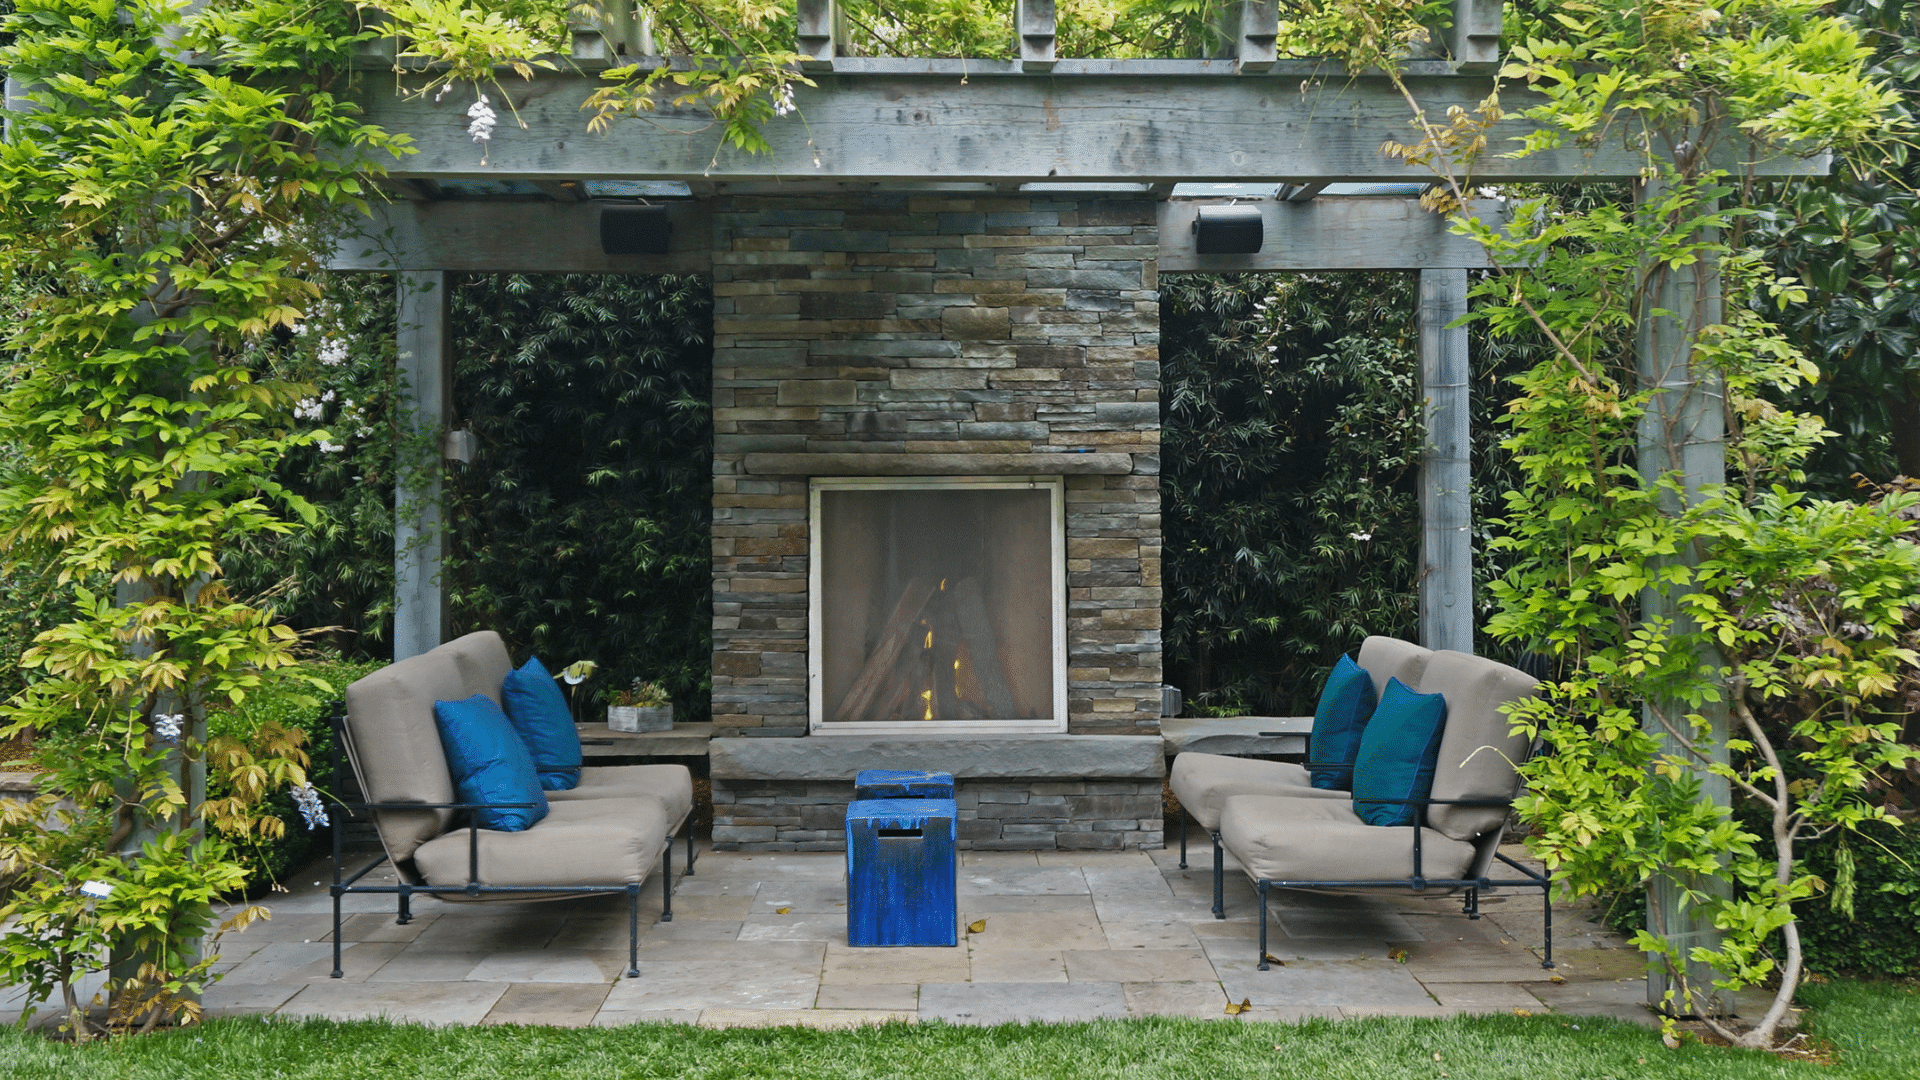 Pergola with fireplace and outdoor seating